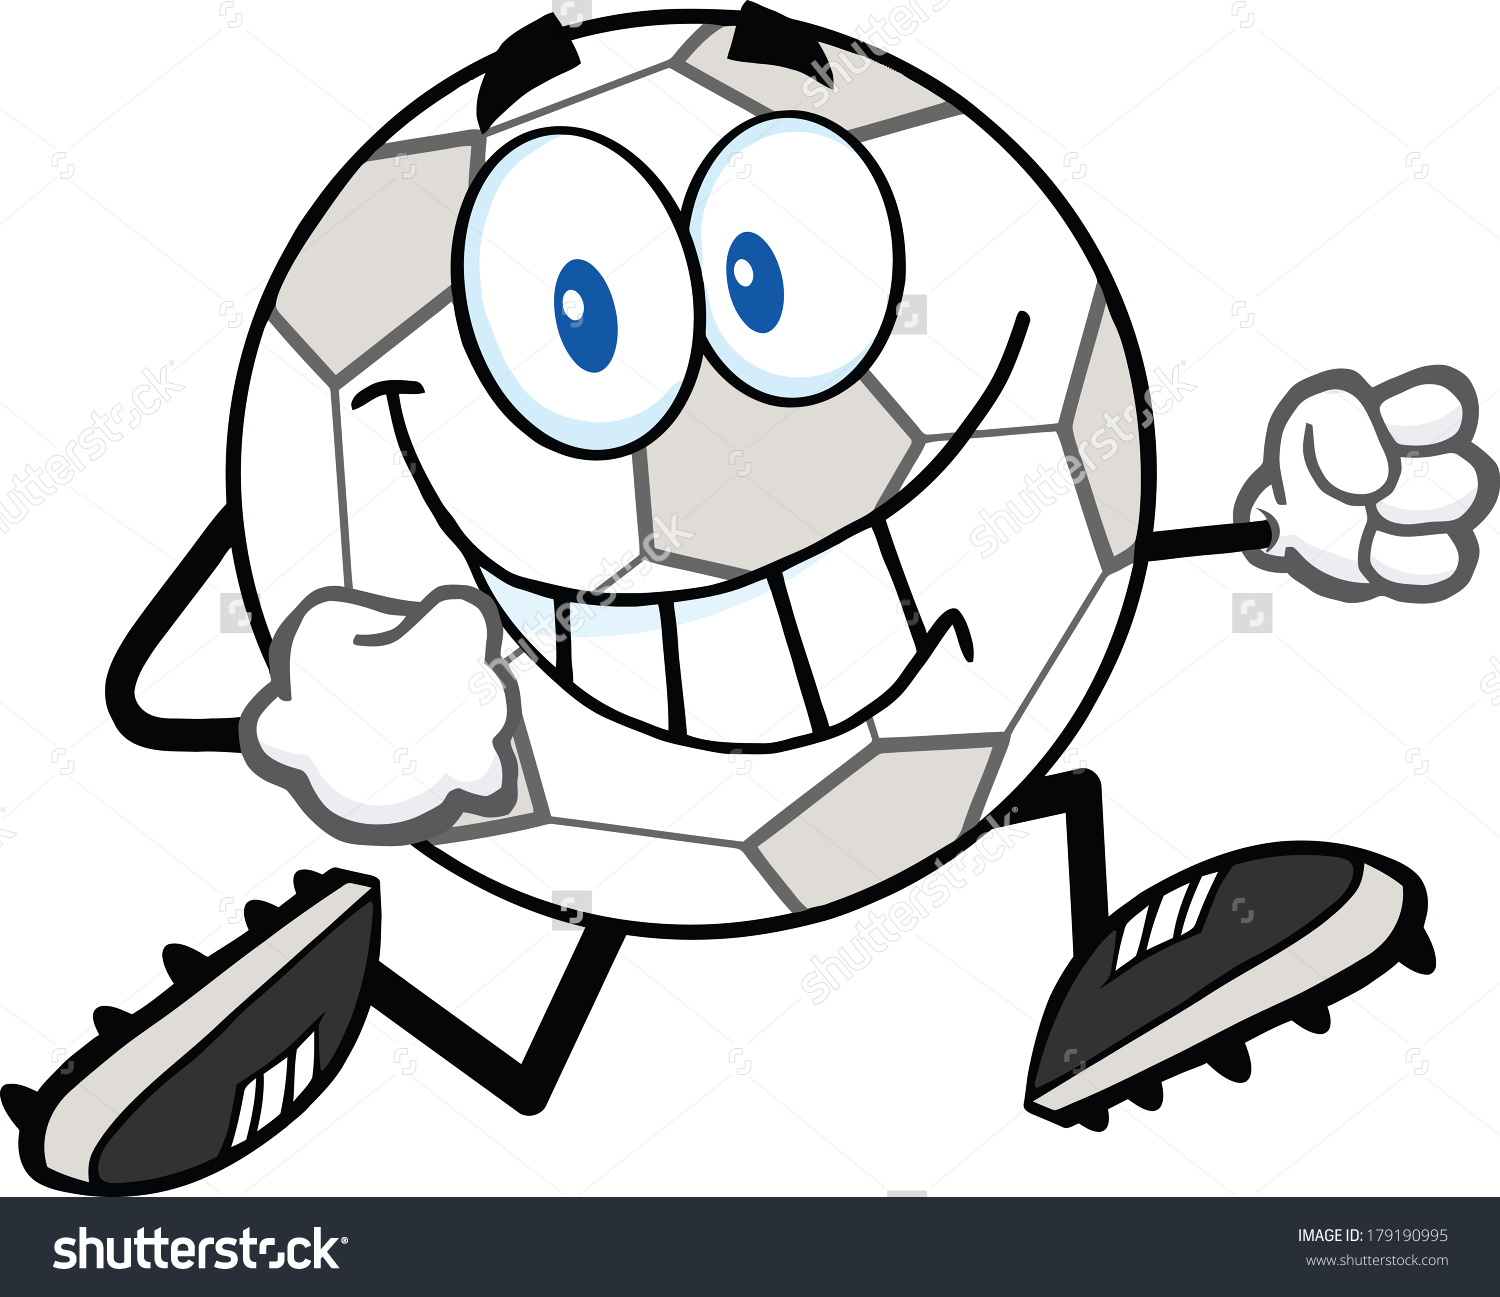 1500x1297 Soccer Ball Cartoon